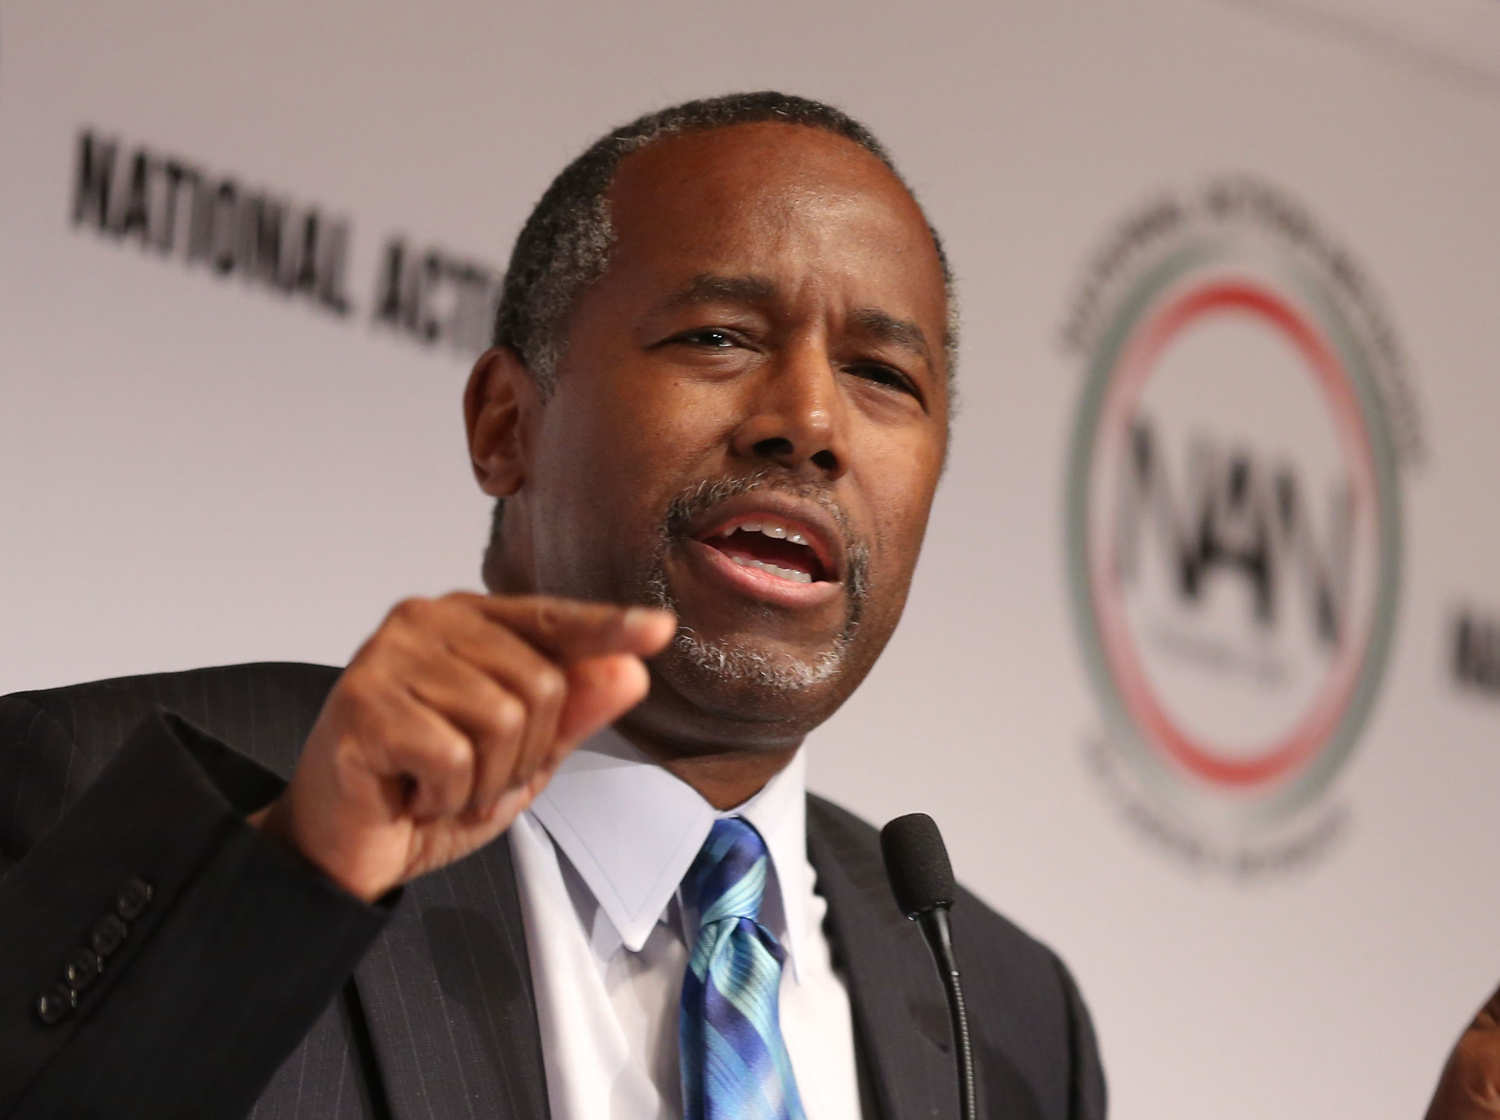 carson ben trump administration cabinet dr position rejects slams denying ties jewish temple un mount believers believersportal